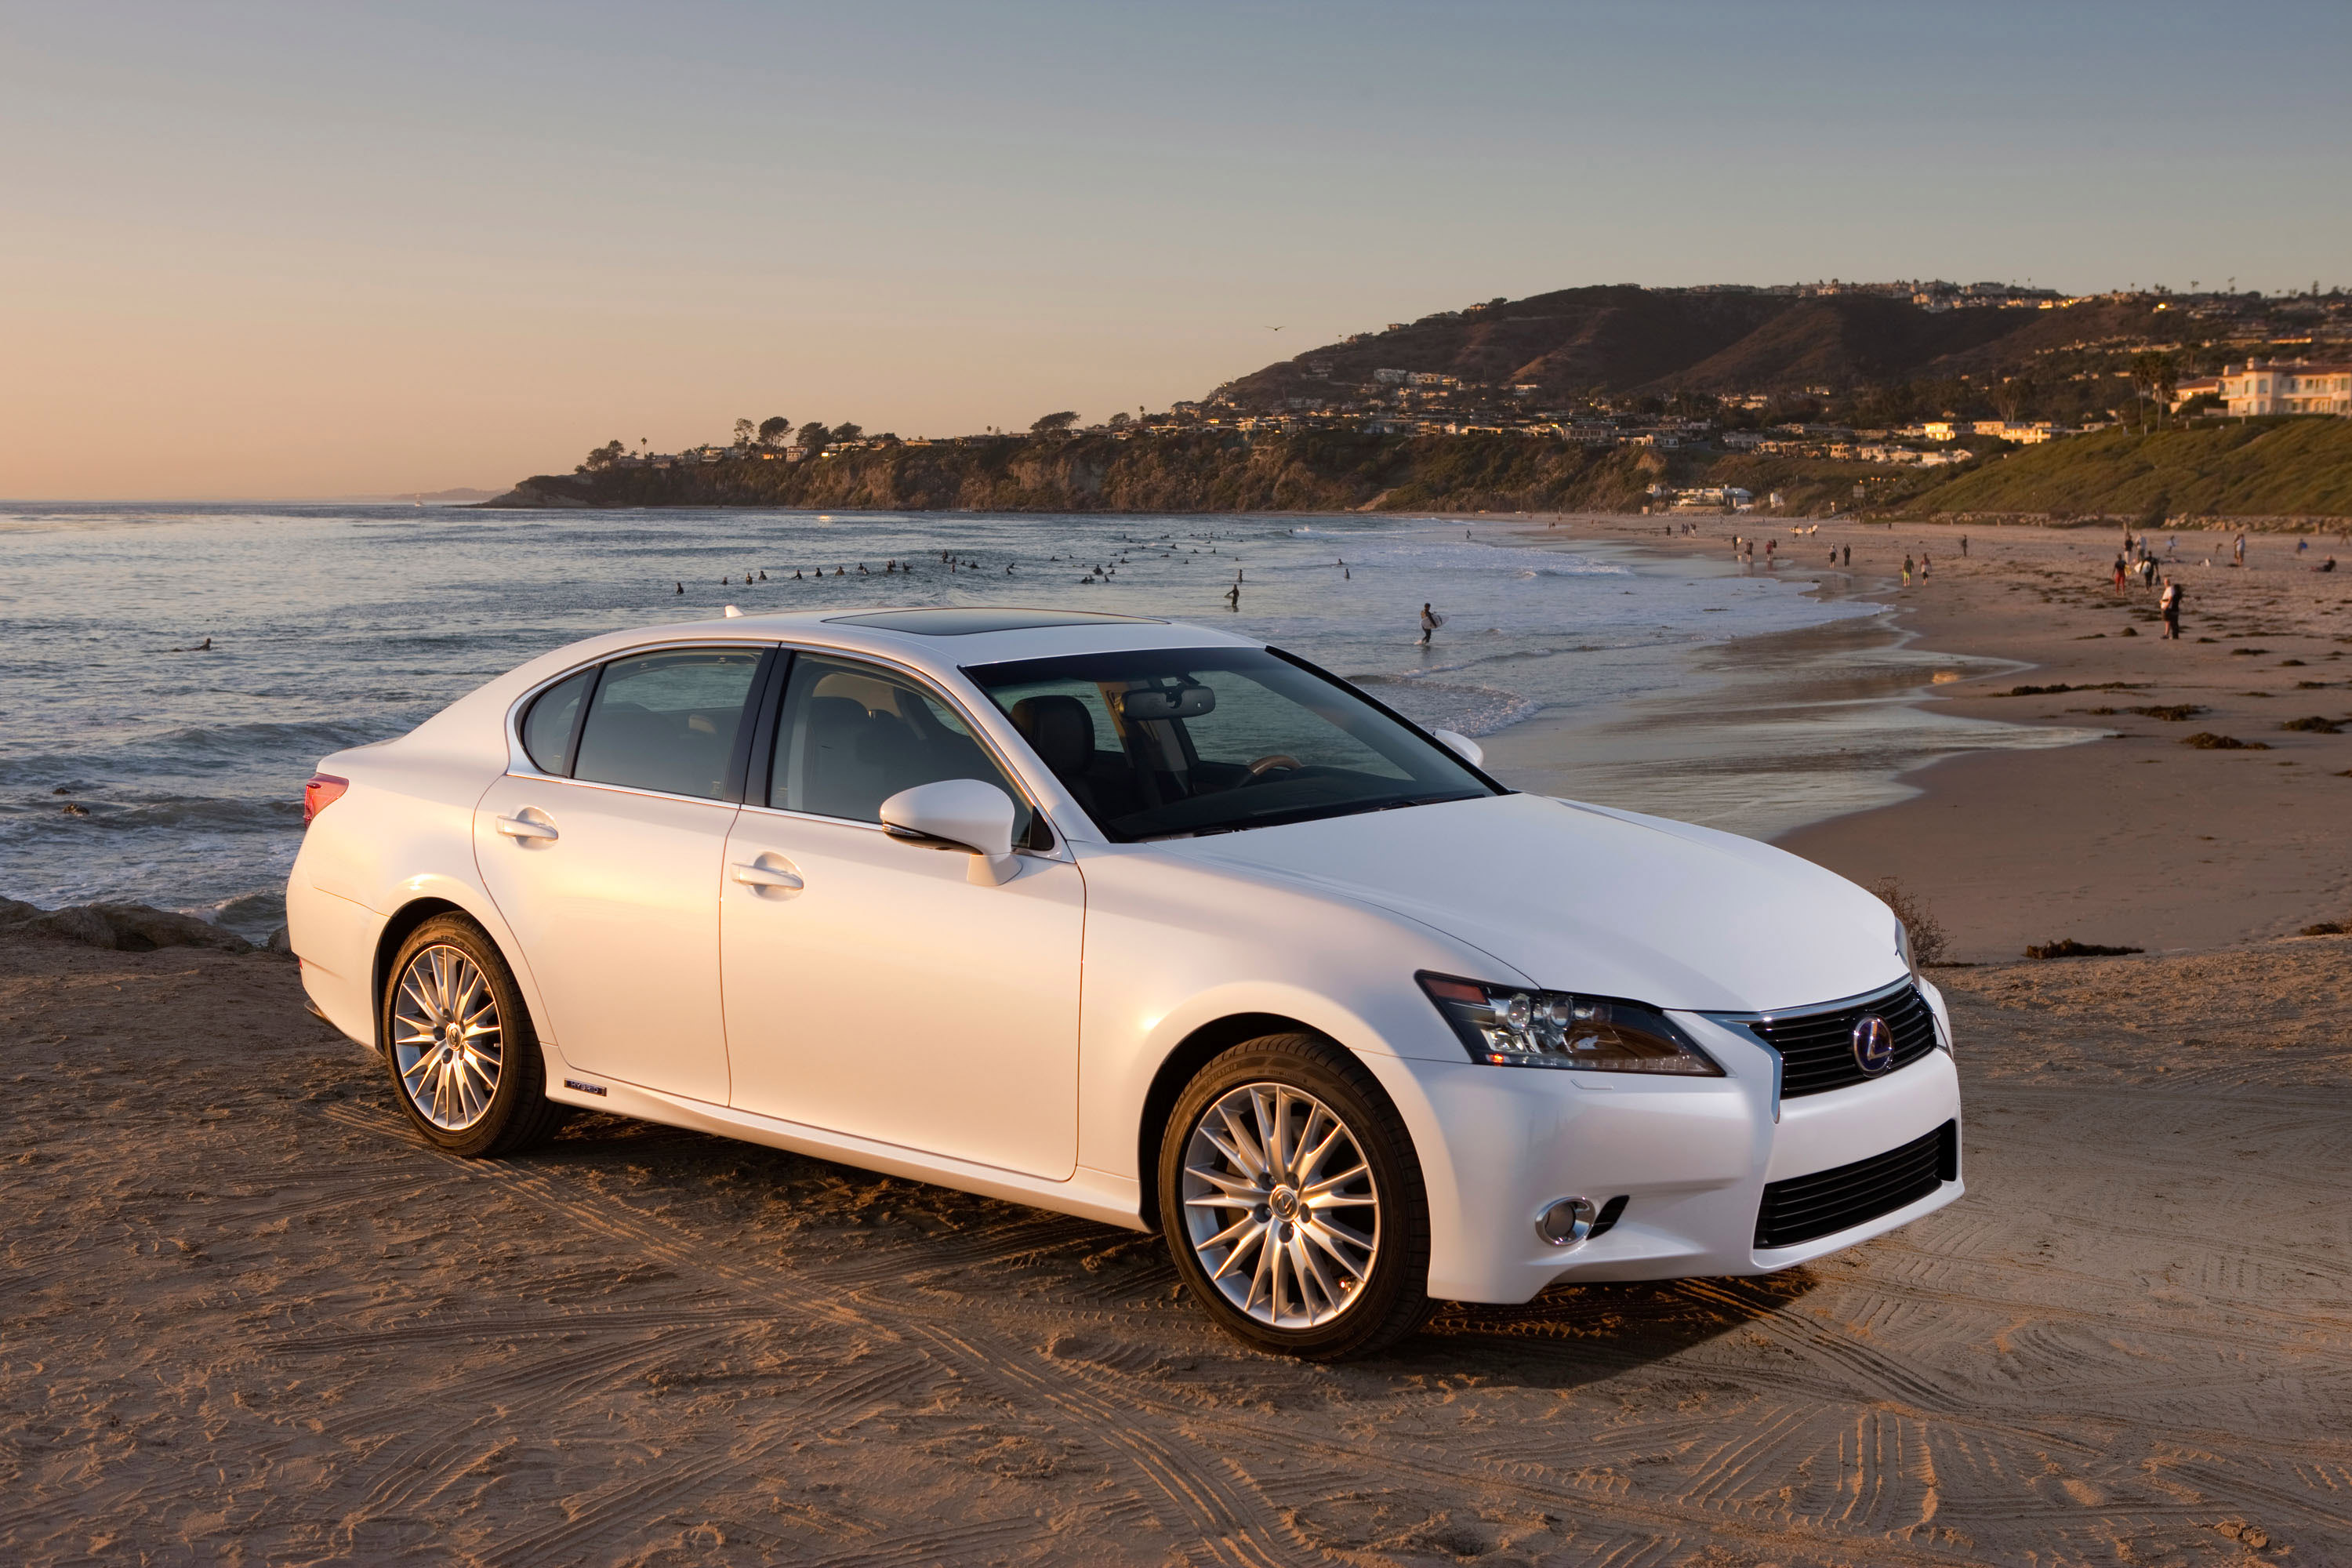 2014 lexus gs 450h review top speed. Black Bedroom Furniture Sets. Home Design Ideas